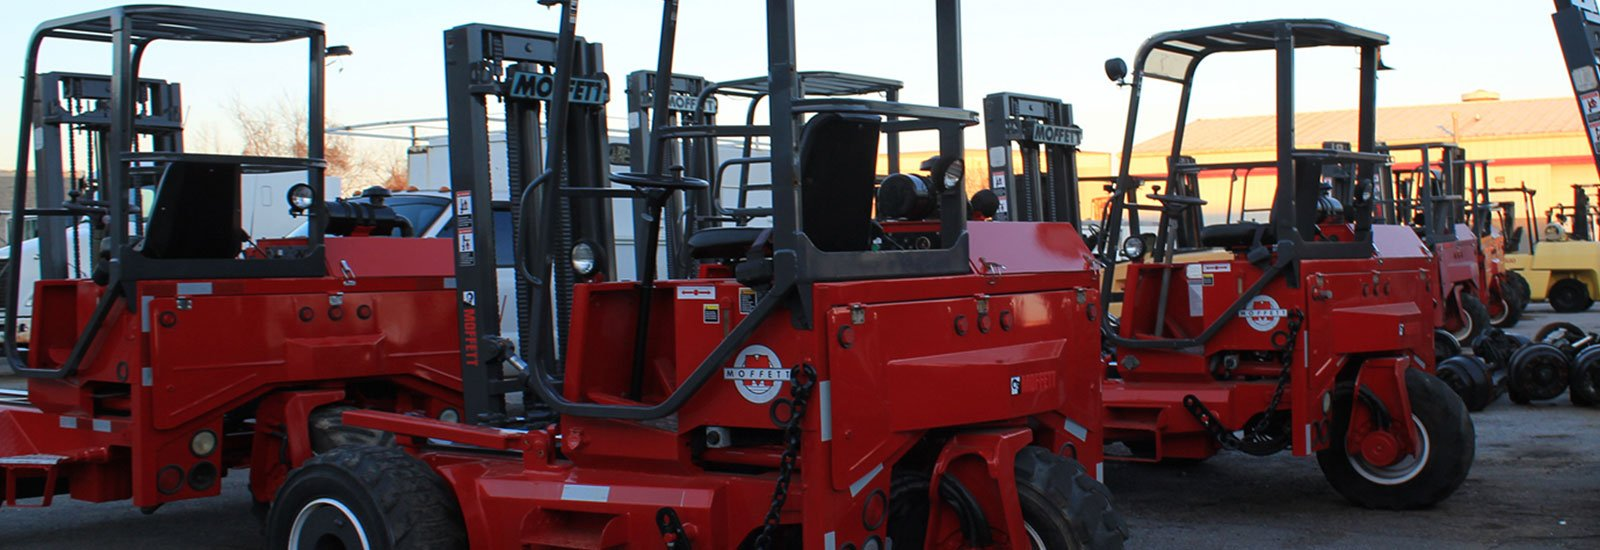 Moffet Forklifts For Sale